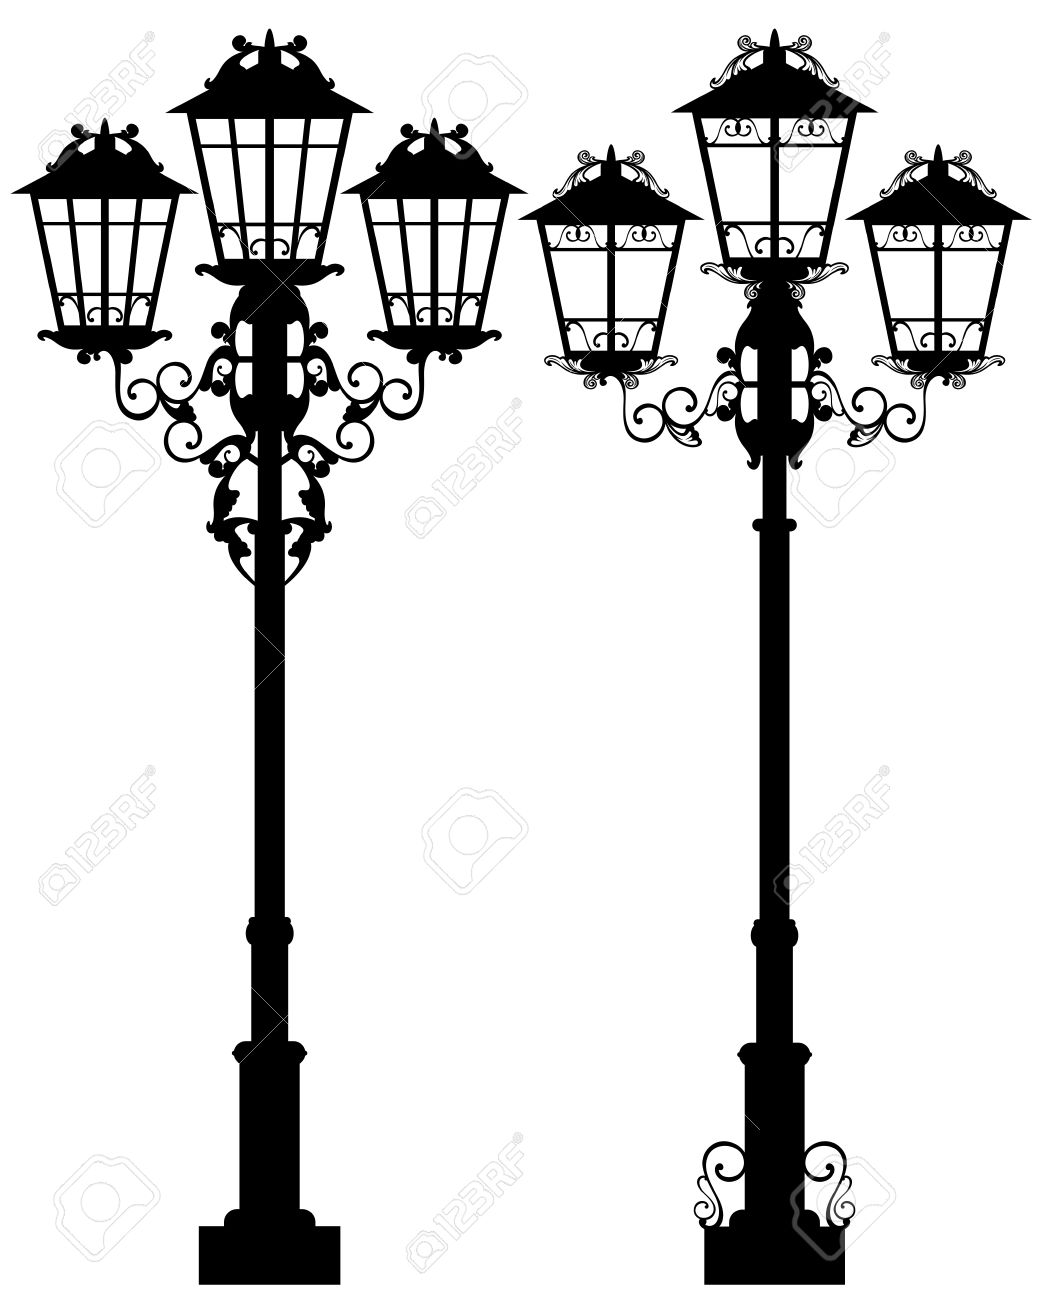 Elegant Street Light Design   Ornate Lamp Black And White Vector  Silhouettes Stock Vector   36125416